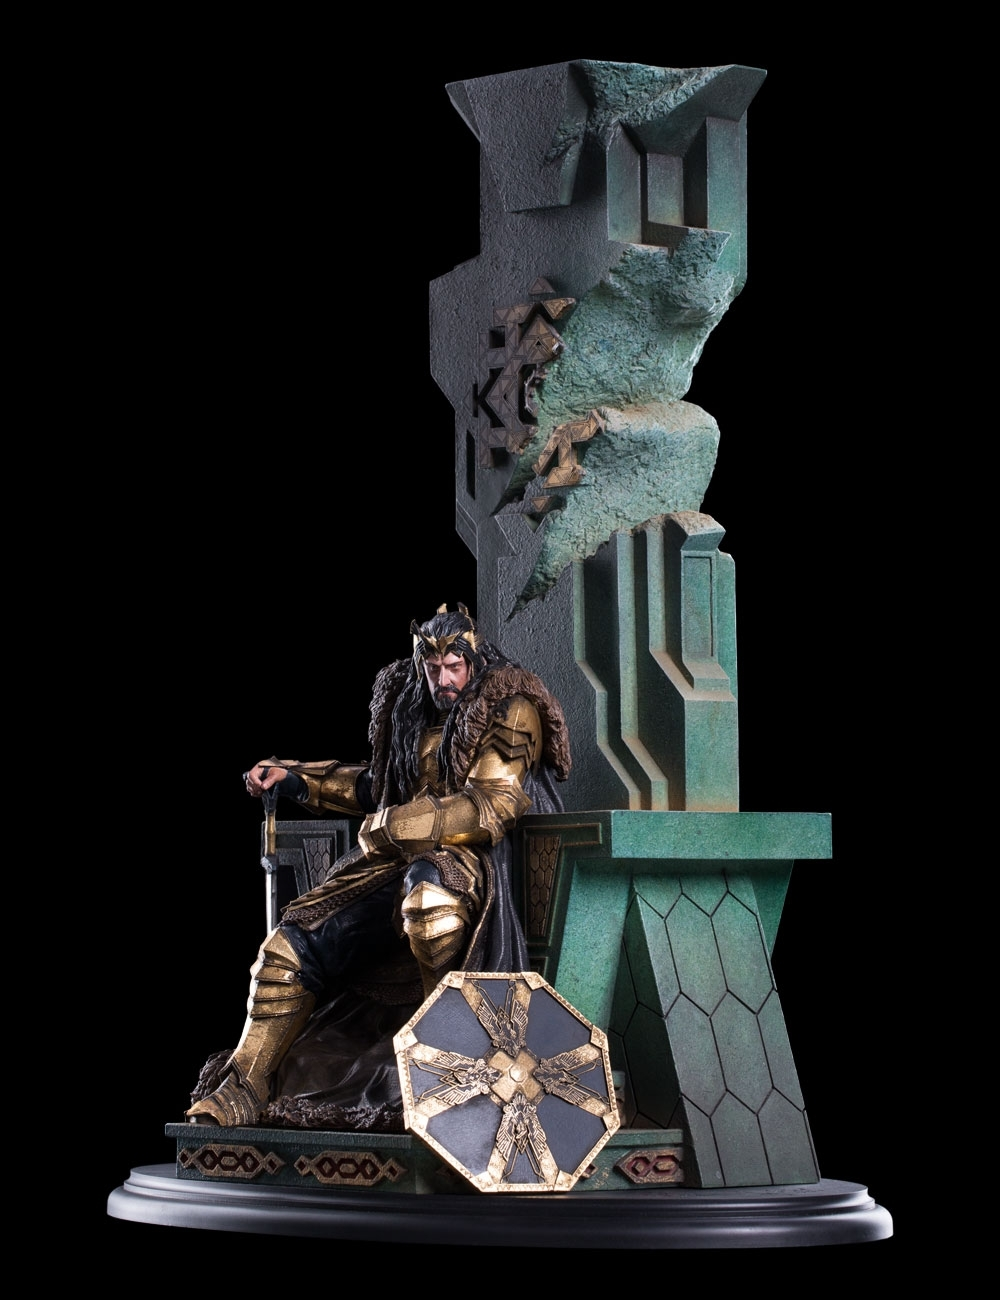 The Hobbit: King Thorin on Throne image